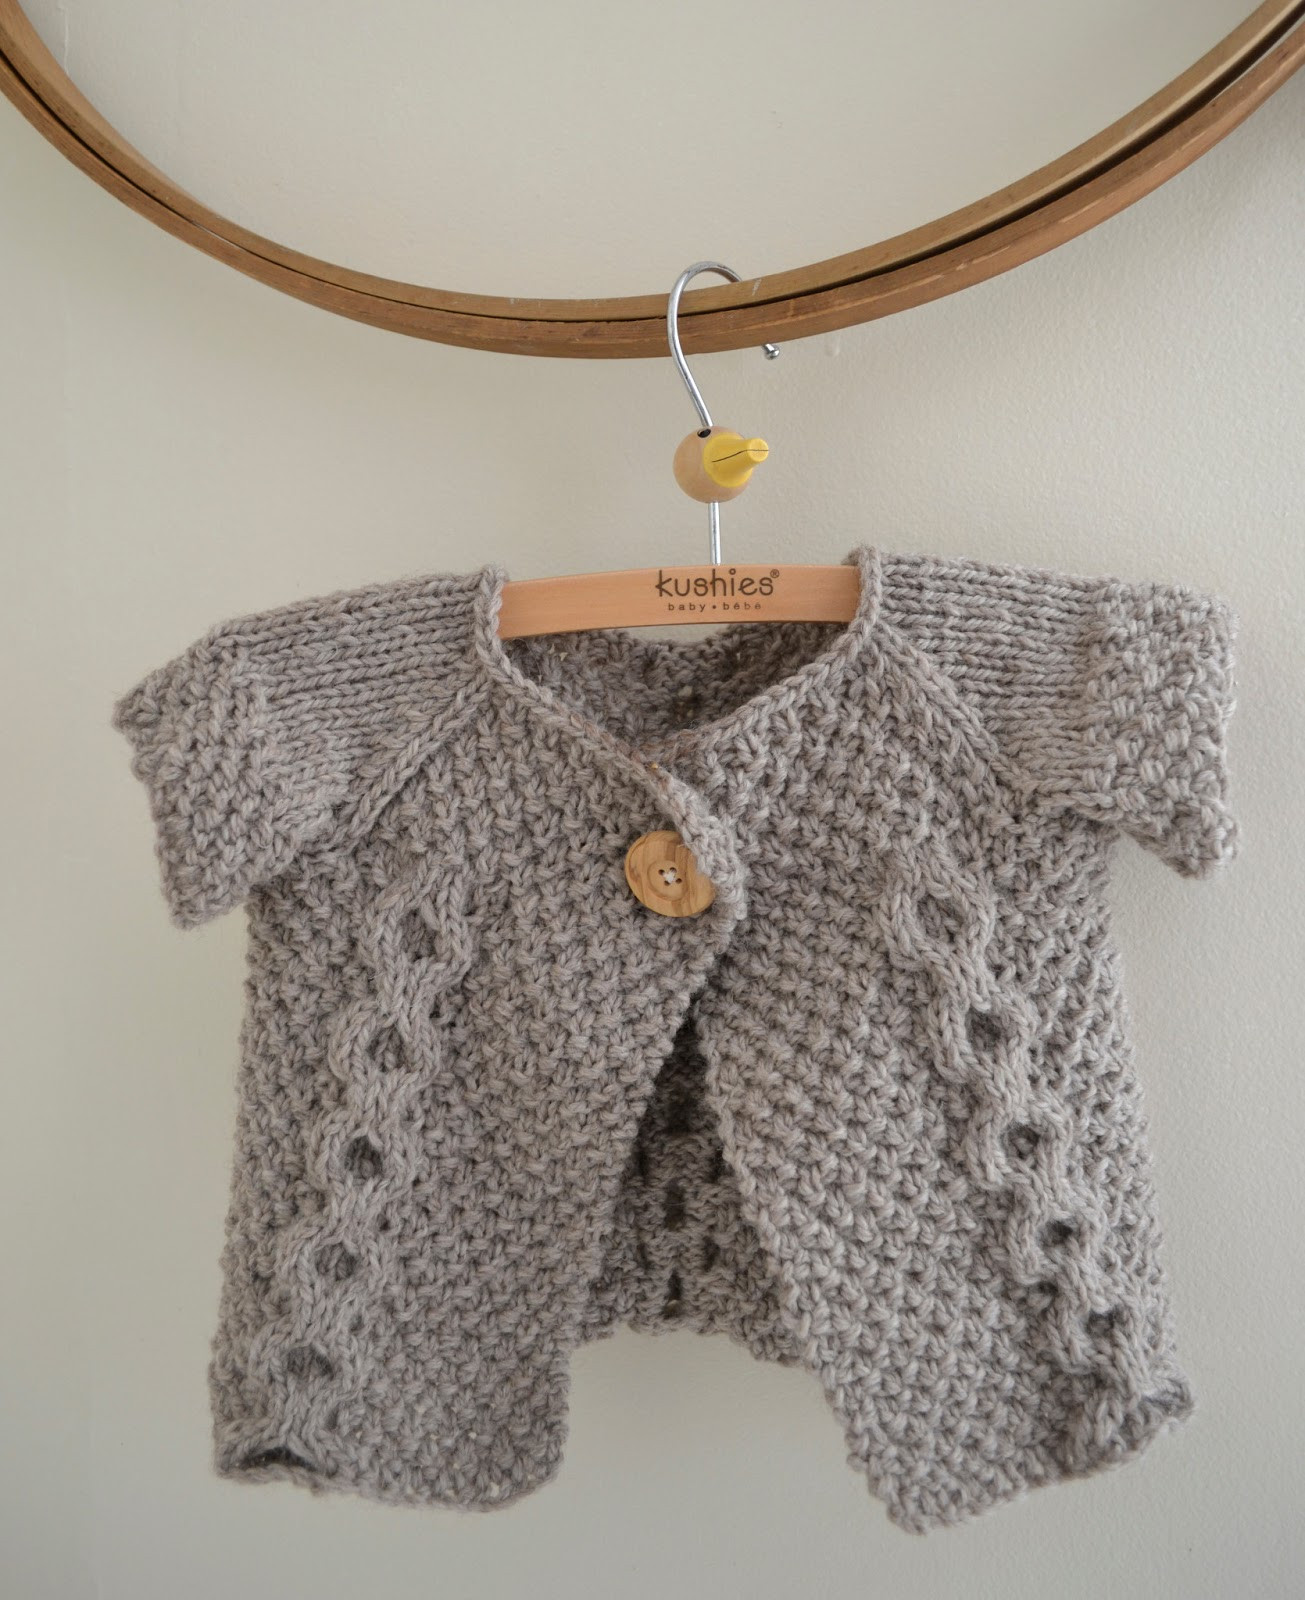 Best Of Baby Sweater Knitting Pattern Cable Knit Sweater Pattern Of Lovely 42 Images Cable Knit Sweater Pattern